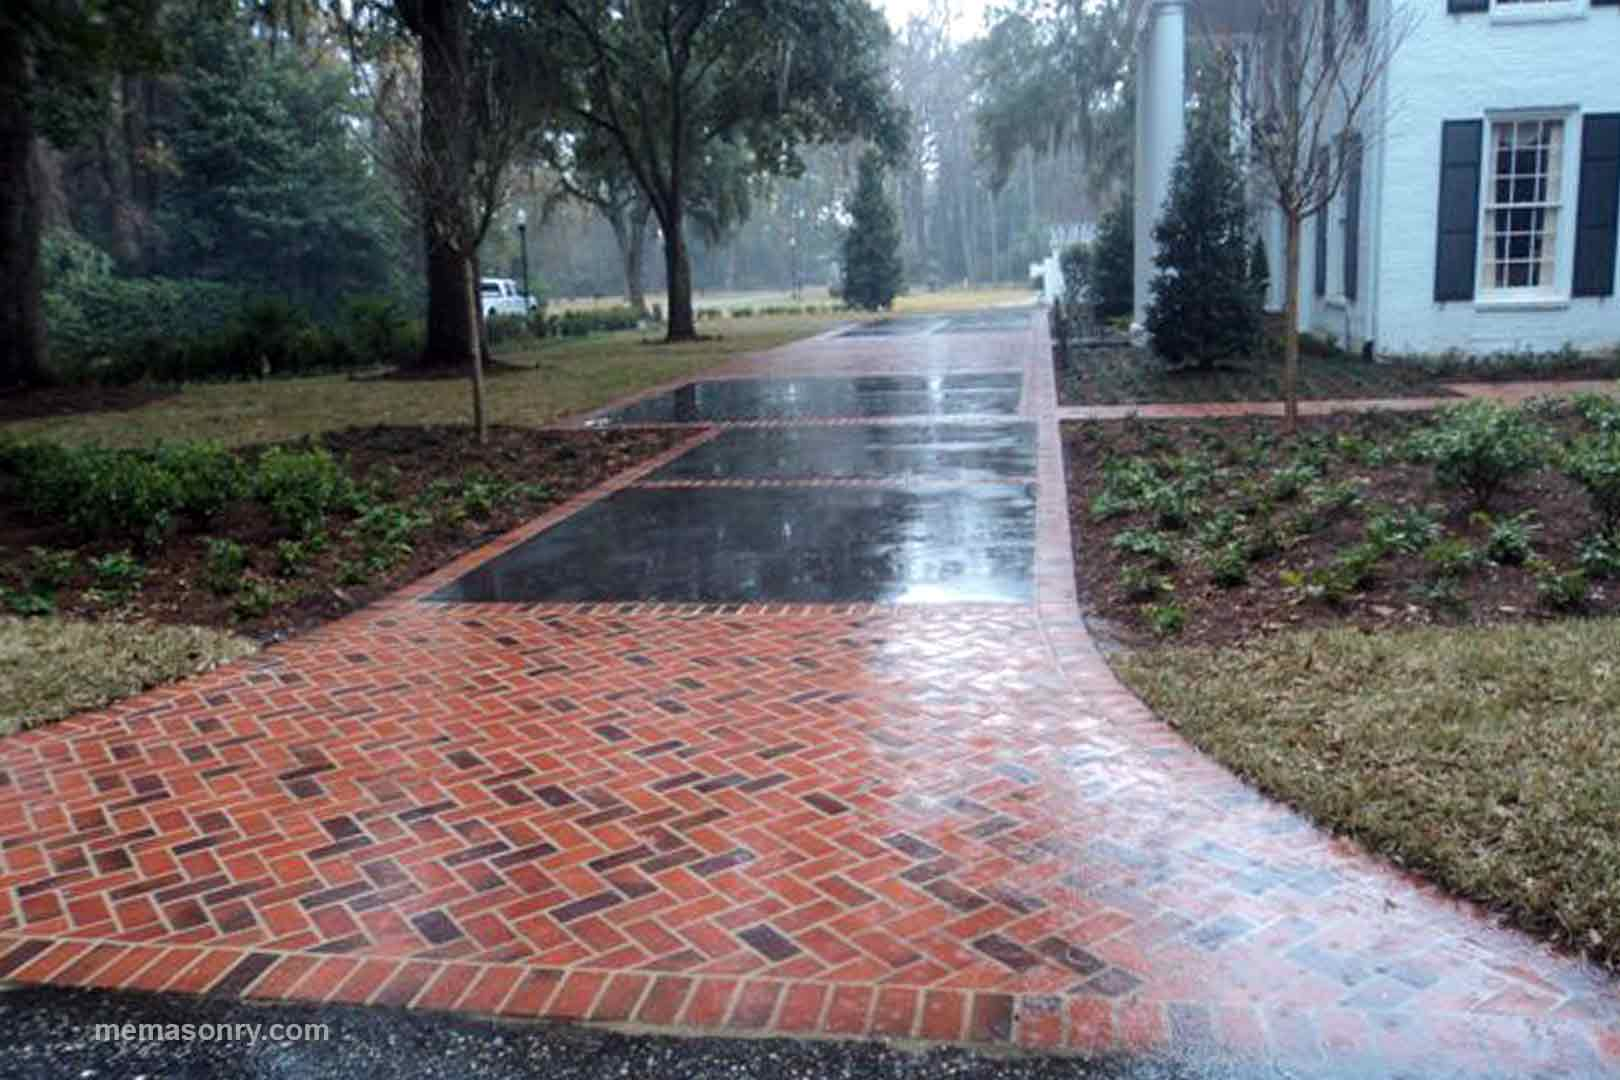 M&E Masonry & Sons brick pavers project 3